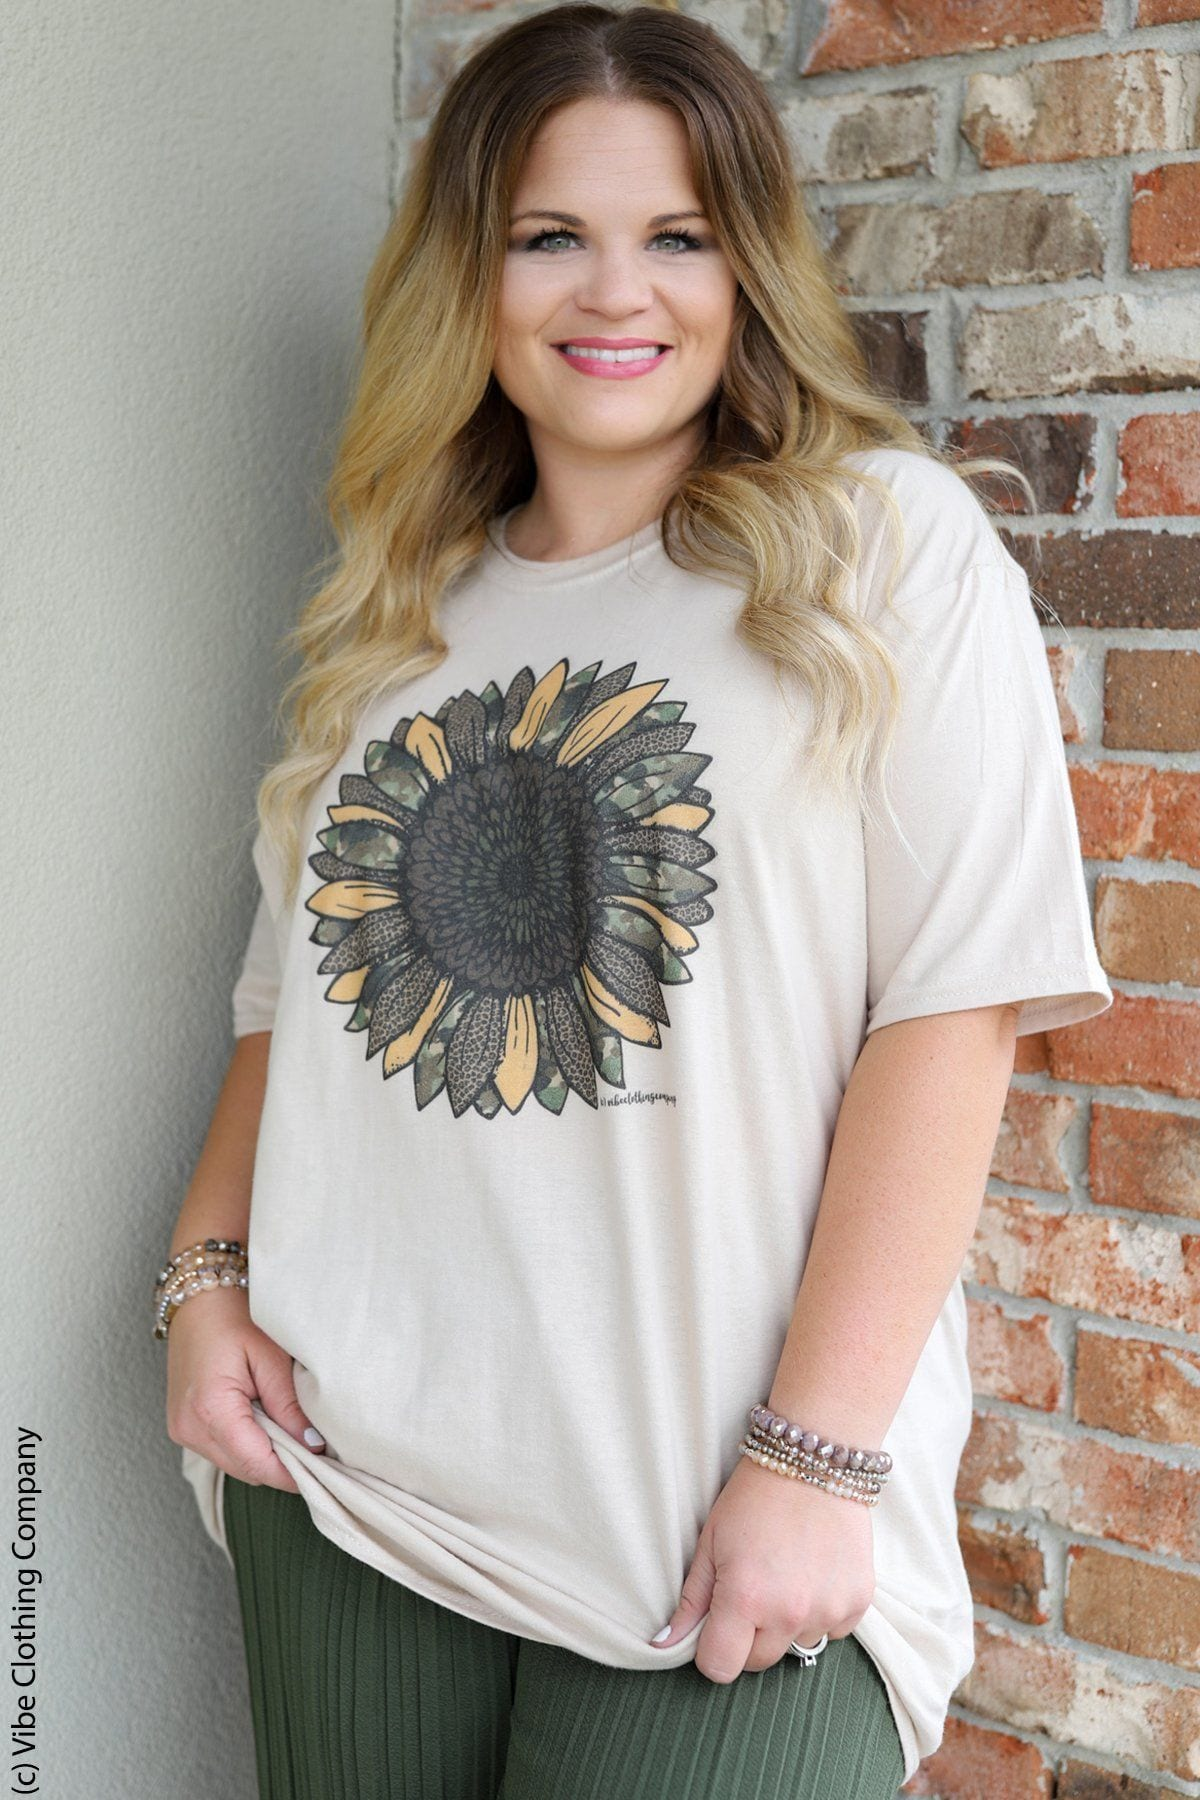 Camo Sunflower Tee graphic tees Mark tee XL